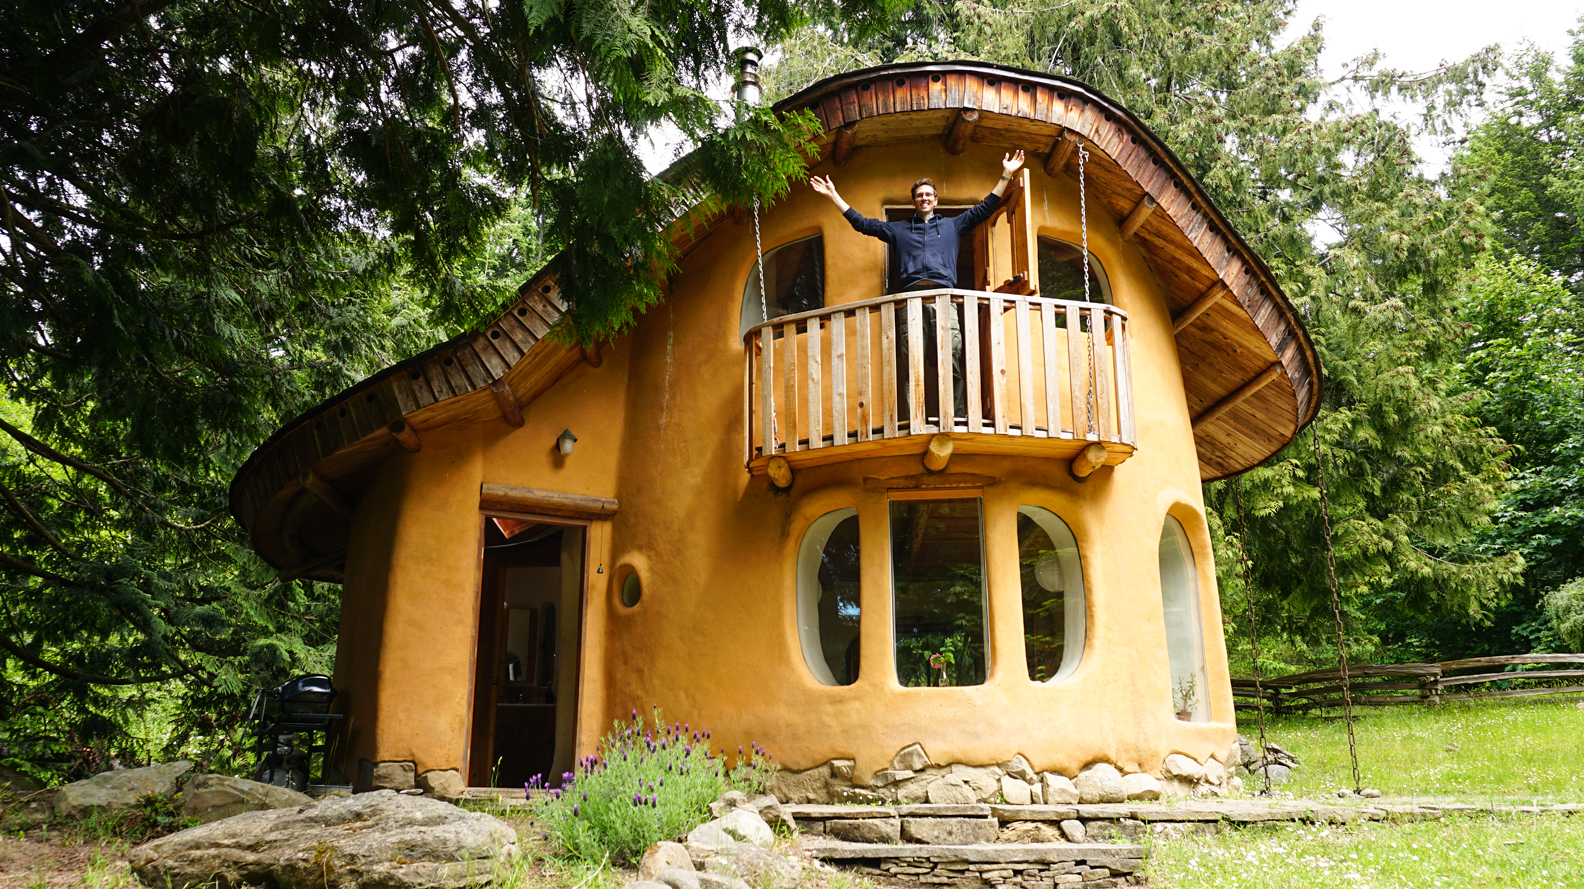 Cob House Sustainable Building Exploring Alternatives 1